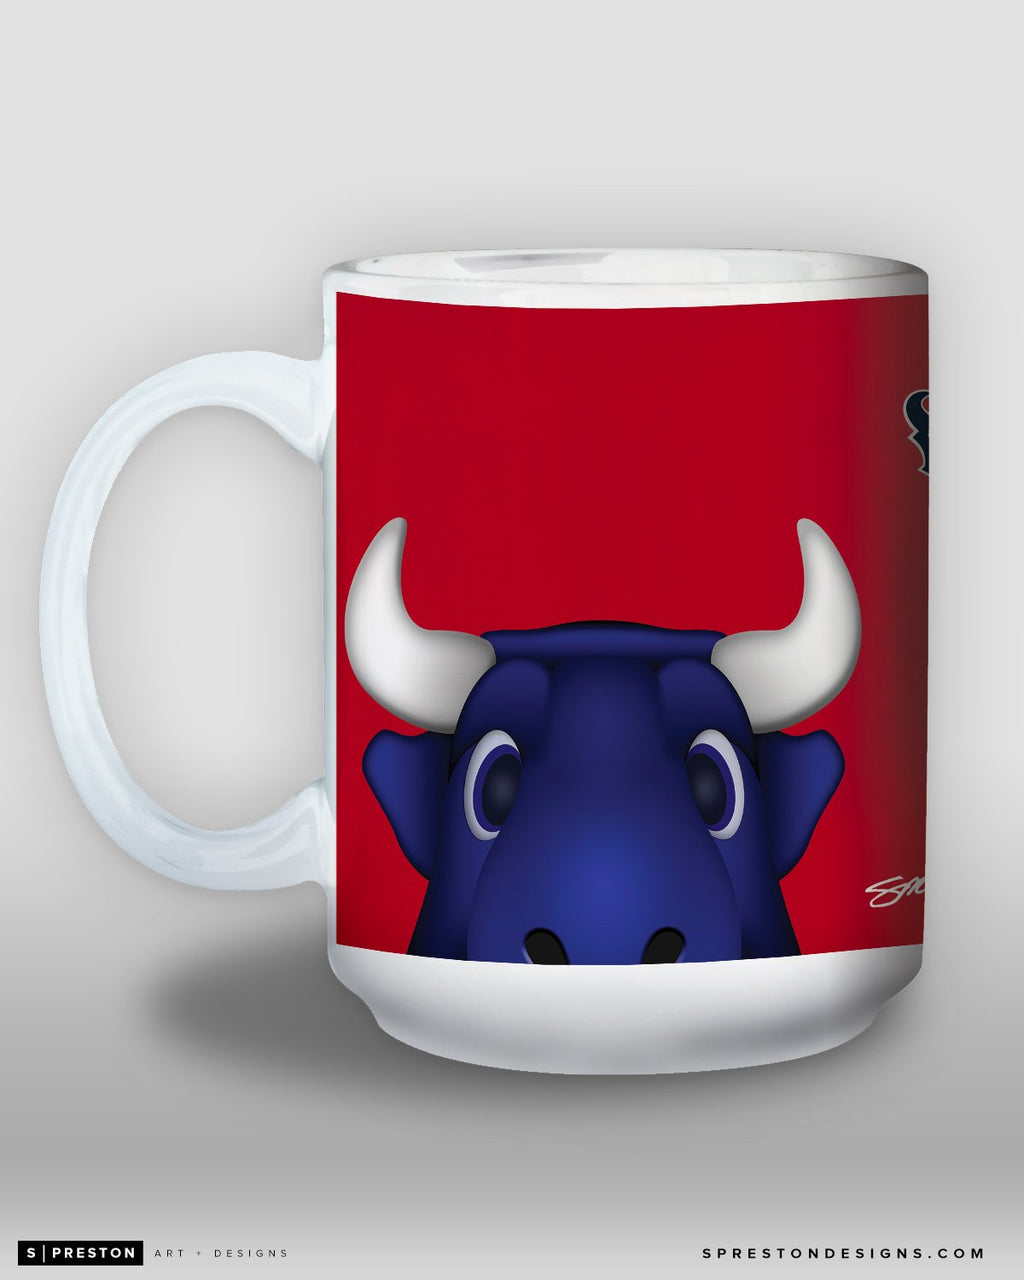 Minimalist Toro Coffee Mug - NFL Licensed - Houston Texans Mascot